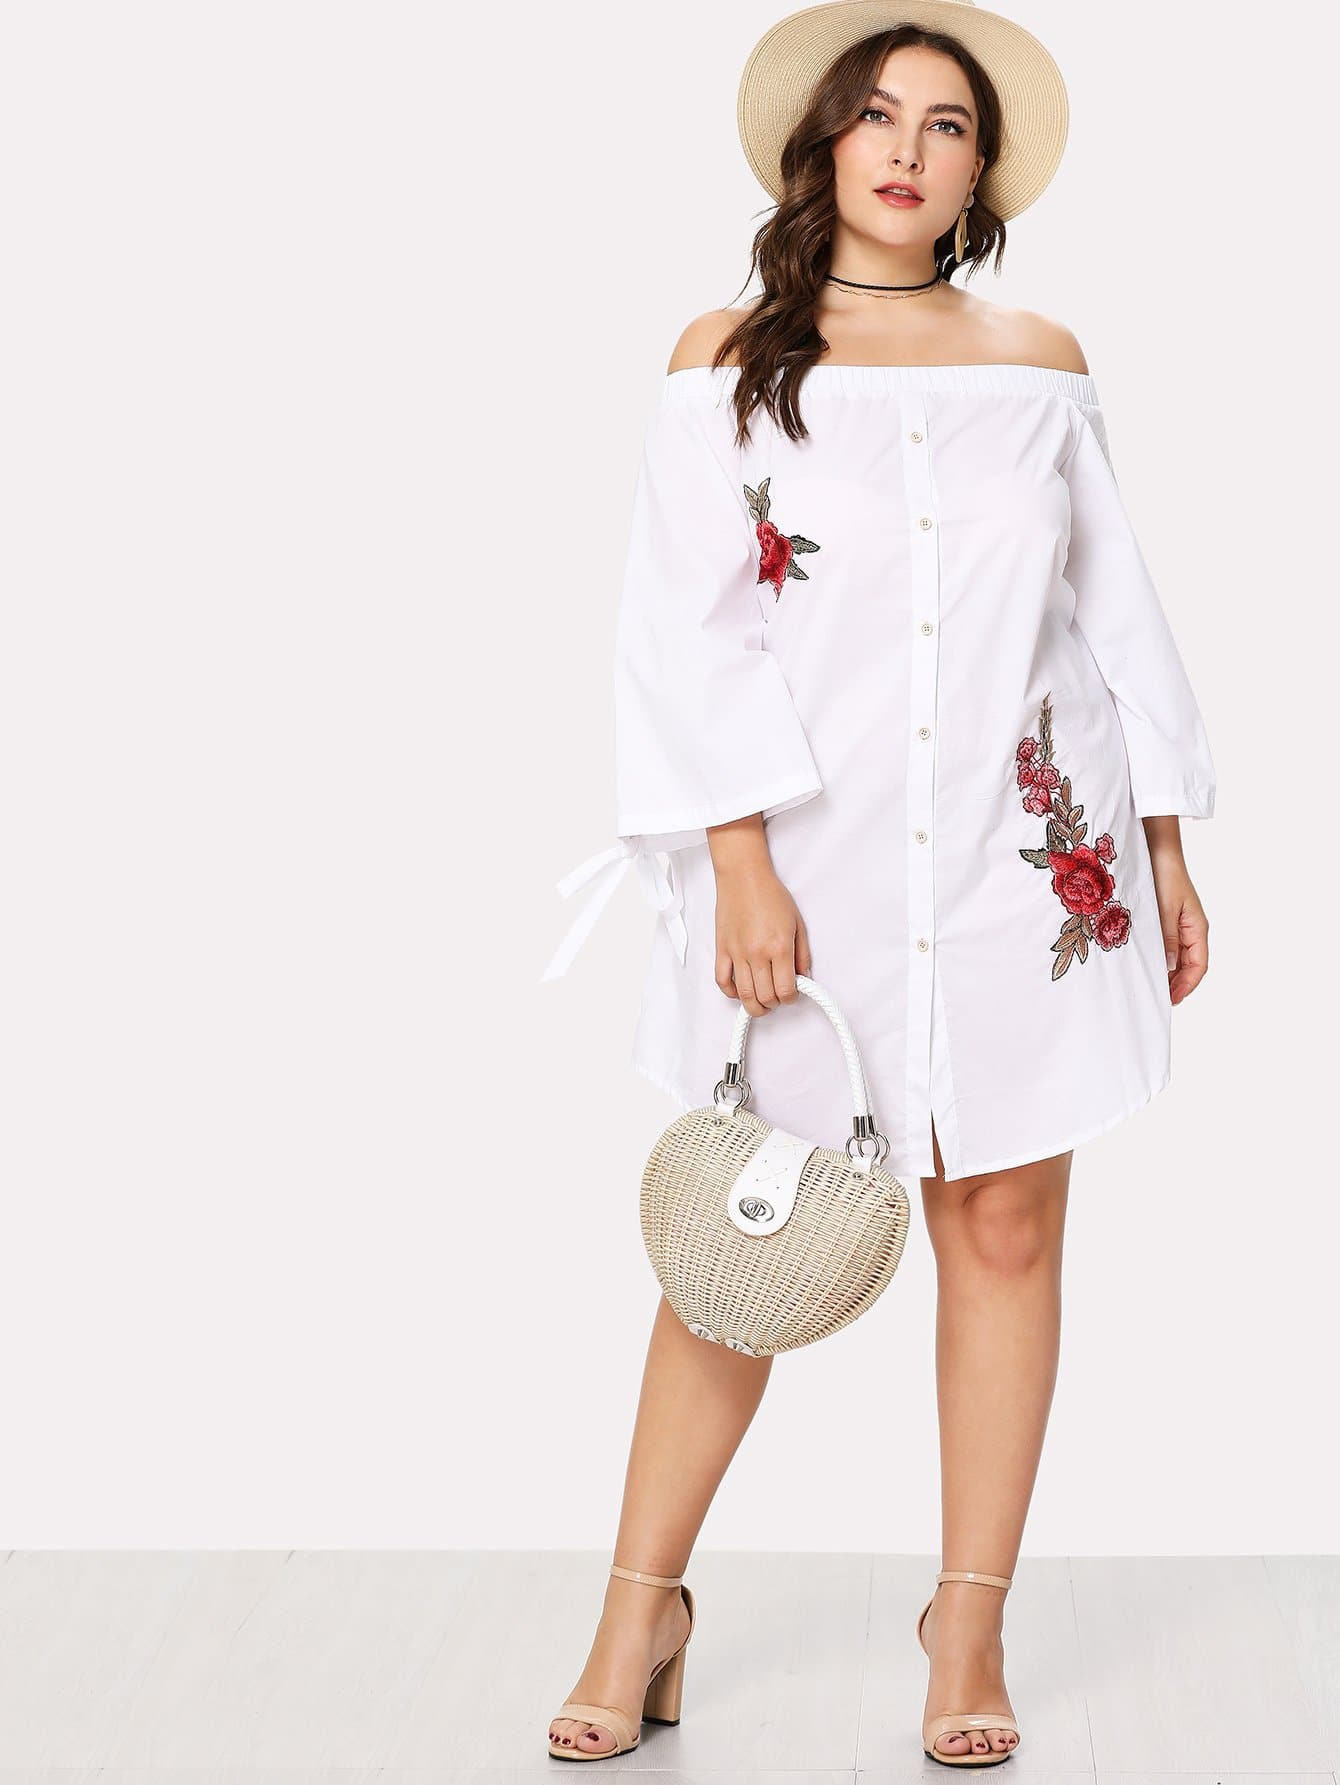 Knot Ruffle Sleeve Embroidery Button Up Dress surplice neck ruffle embellished button up dress